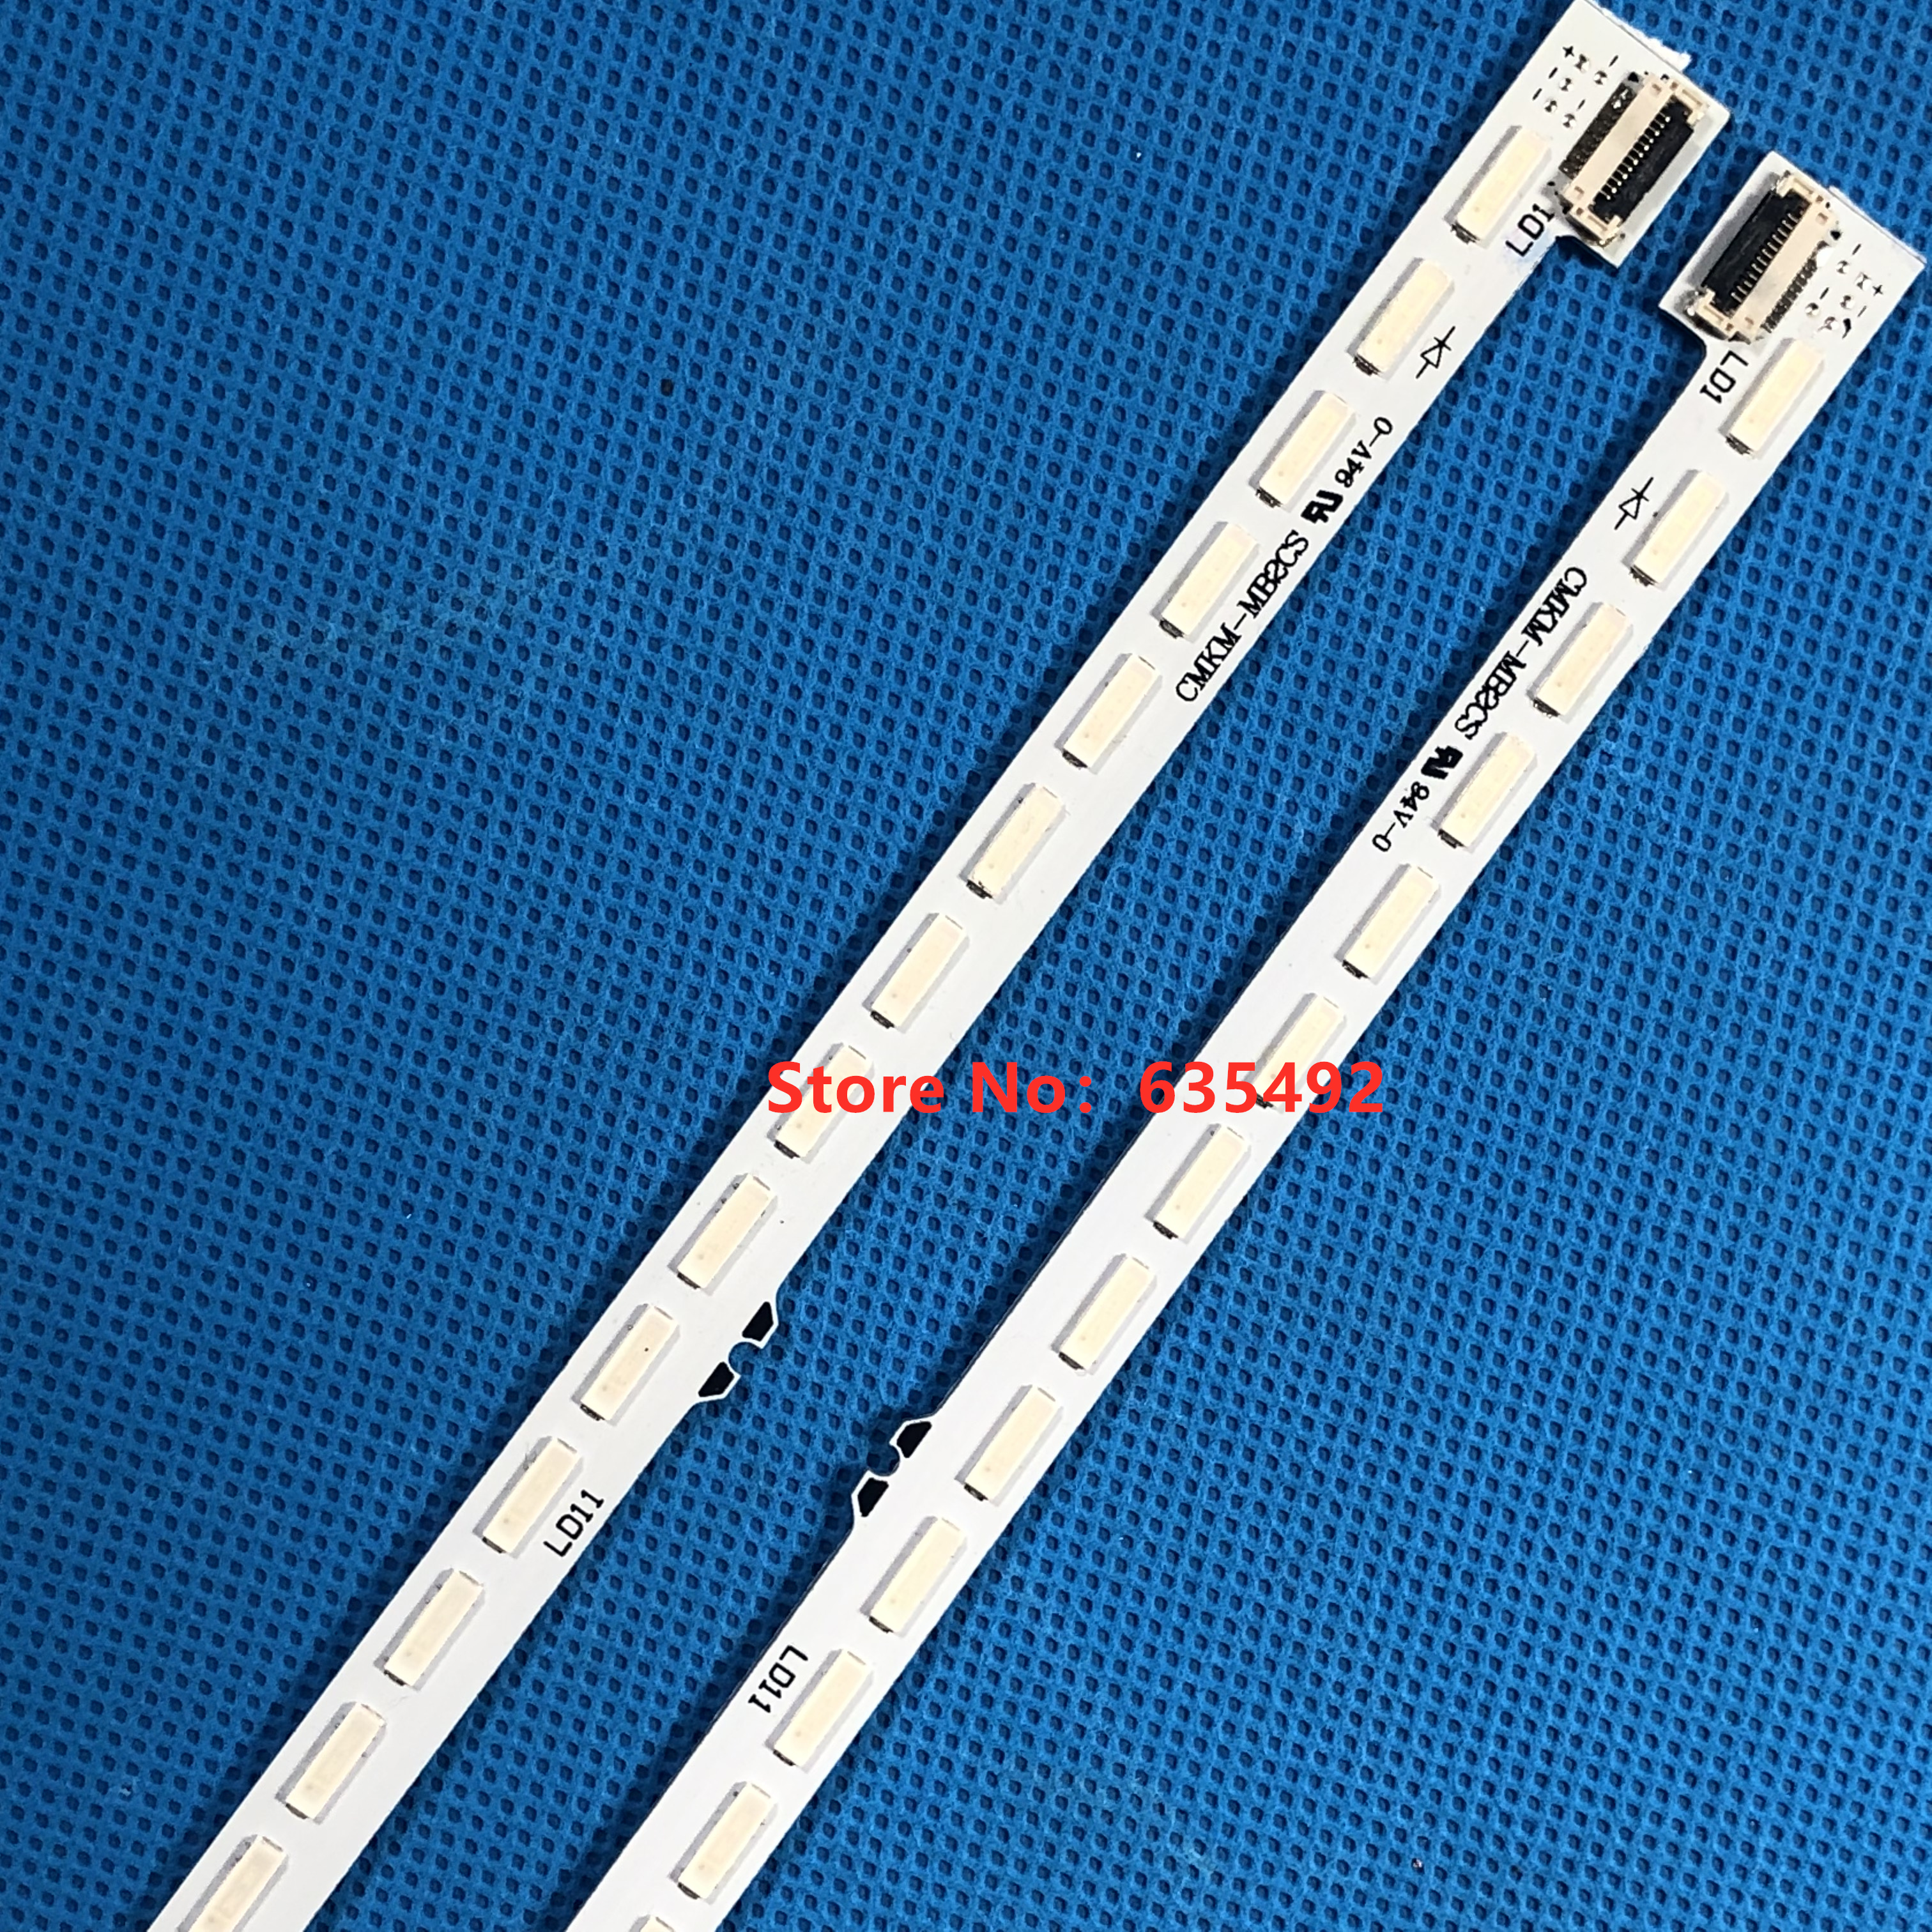 2PCS LED Backlight Strip 36lamps For 55inchTV S Ony  KDL-55W900A KDL-55W905A  P61.P8302G001 NLAC20217L NLAC20217R